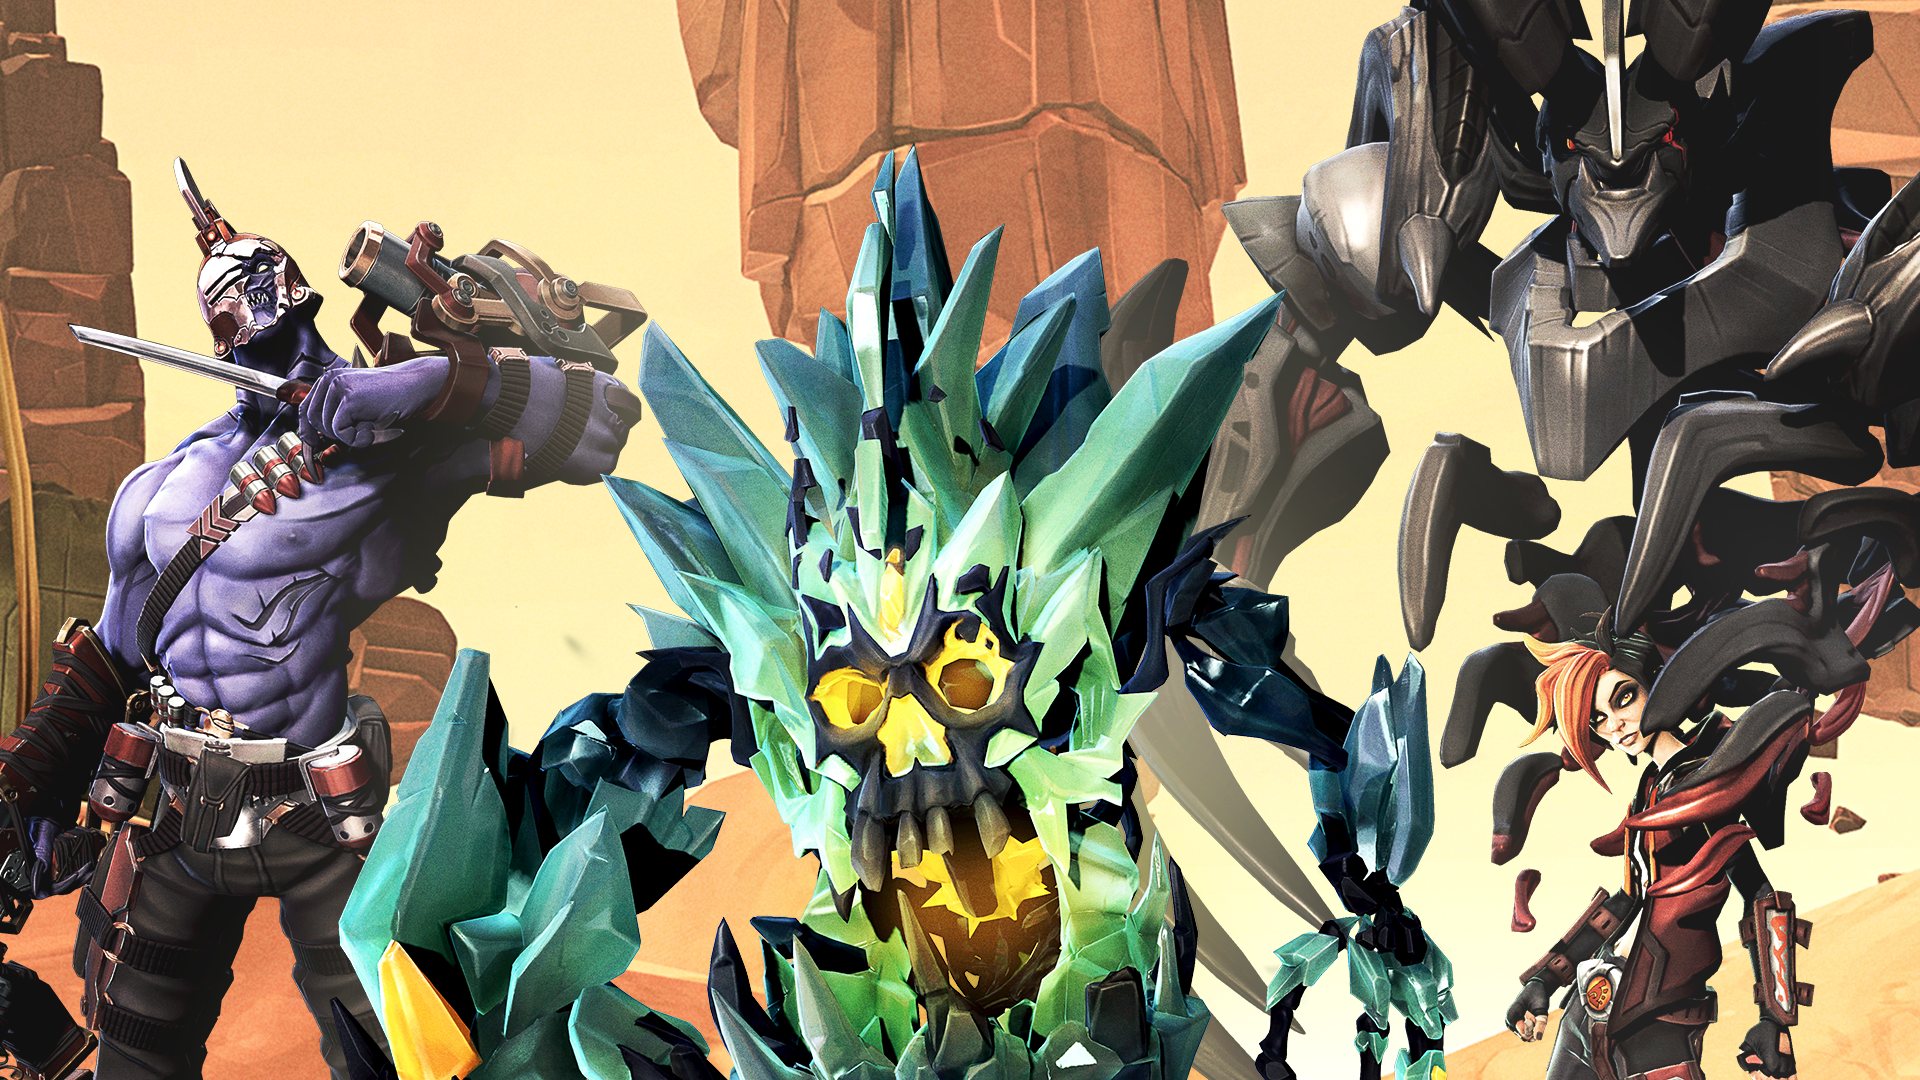 Three New Heroes for Battleborn